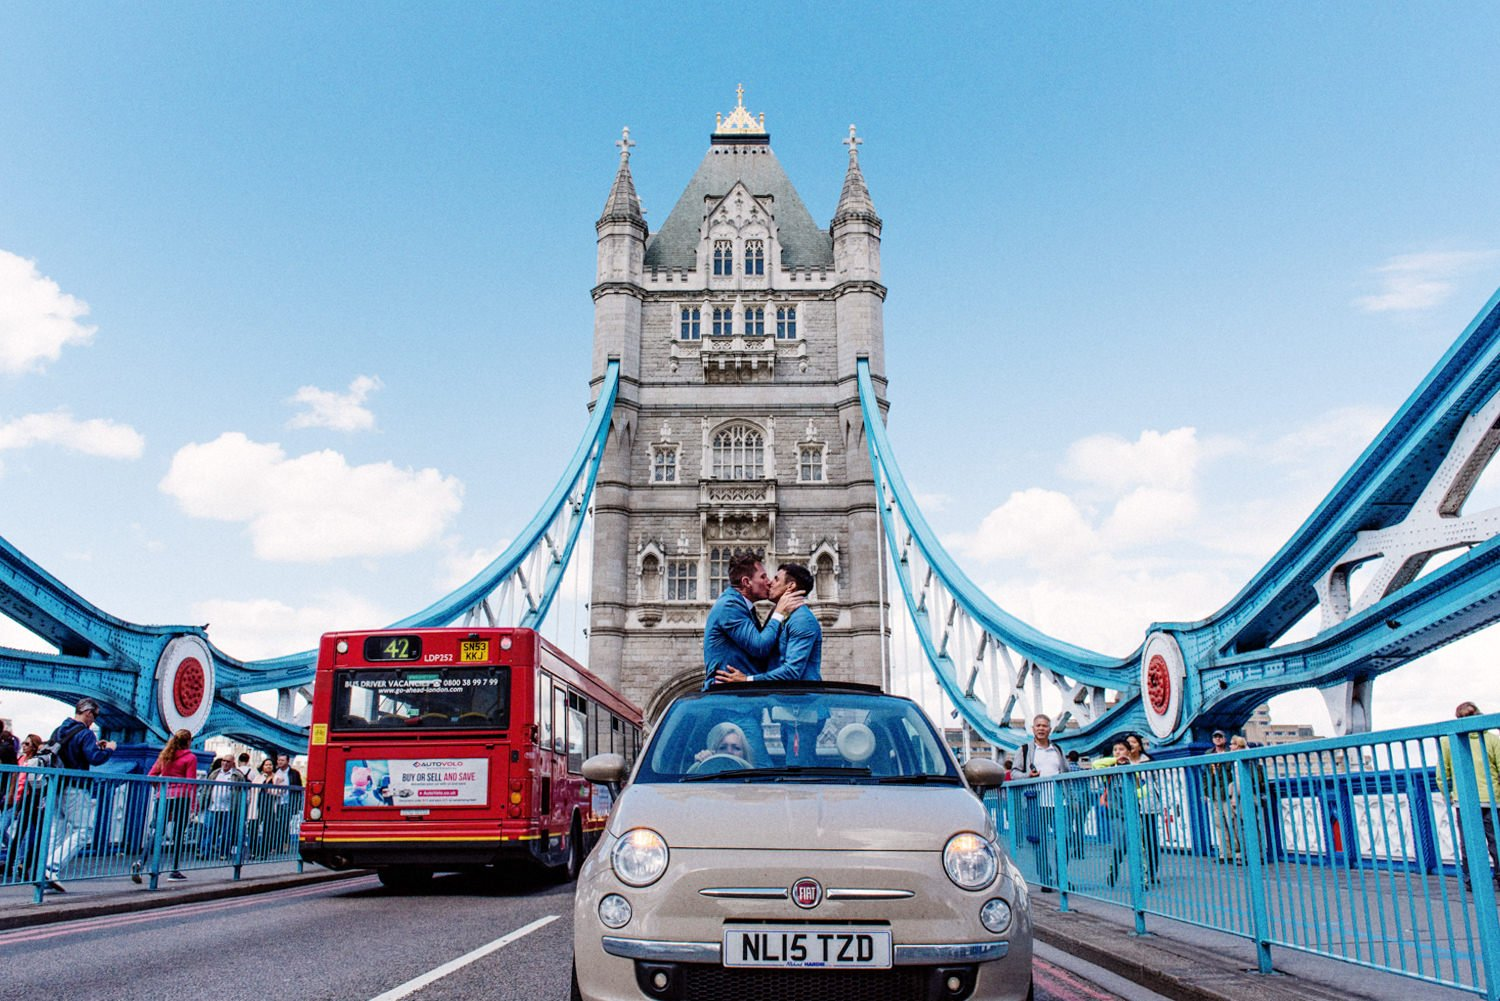 london wedding photographer babb tower bridge